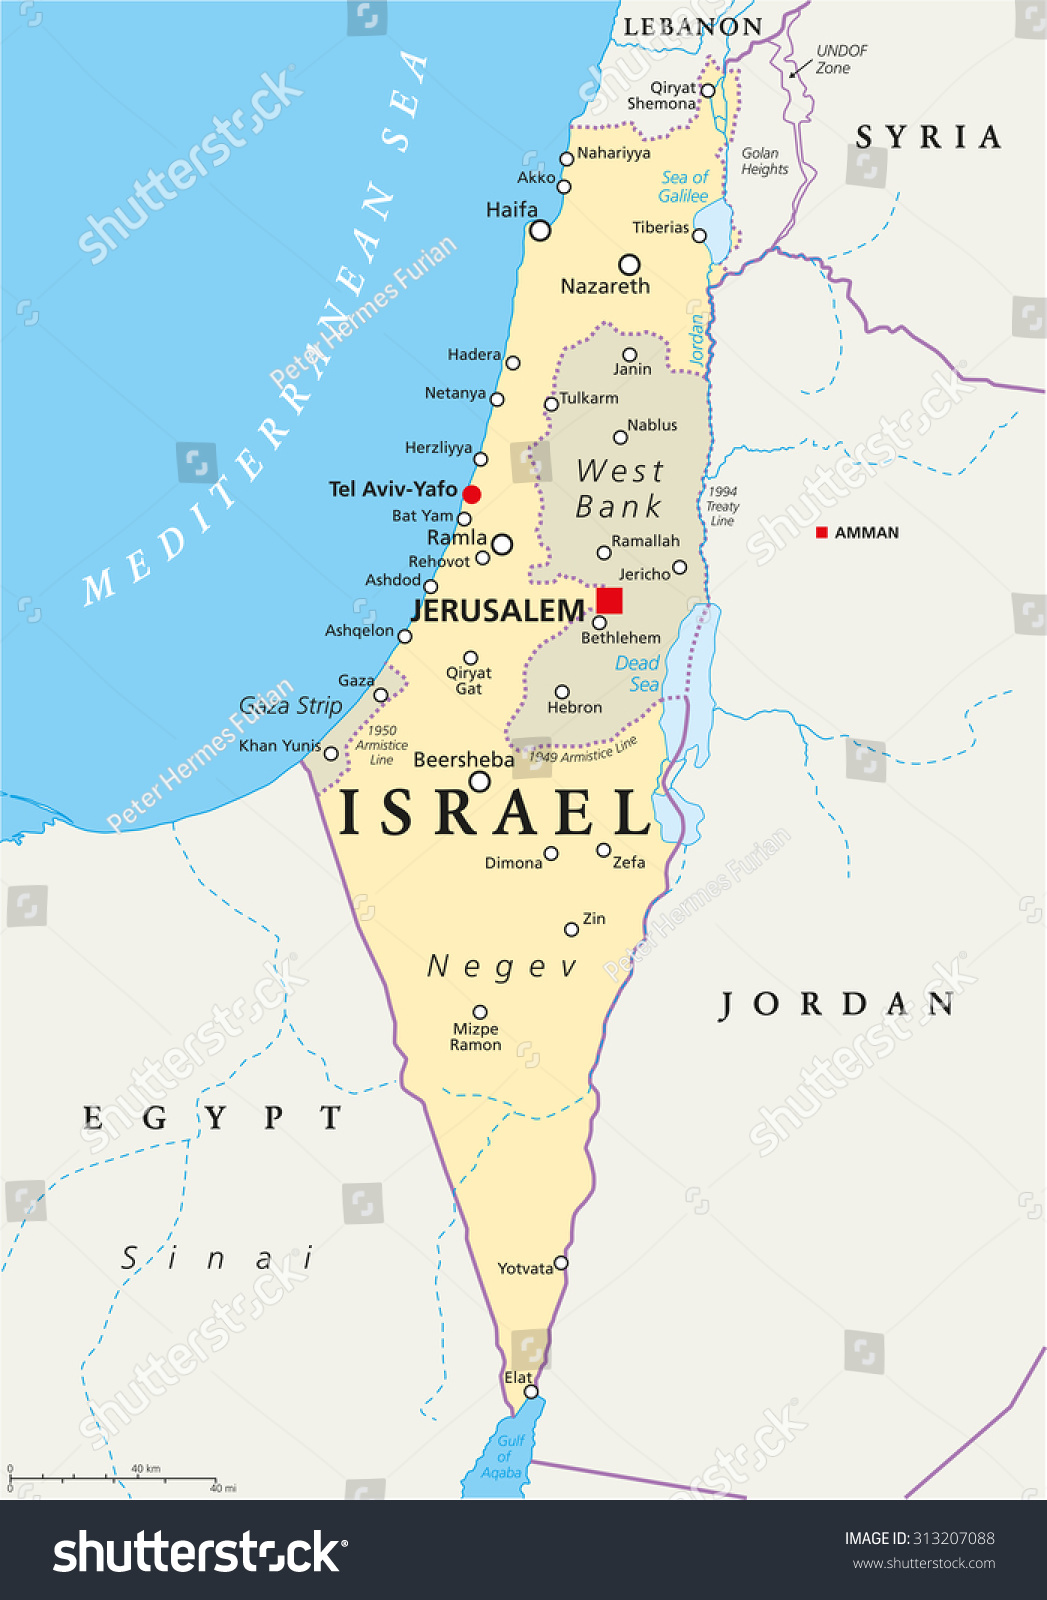 bat yam israel map with Israel Political Map Capital Jerusalem National 313207088 on Israel star abel together with H44088 Hotel Armon Yam as well Jerusalem Map together with Israel Map in addition Israel Map.